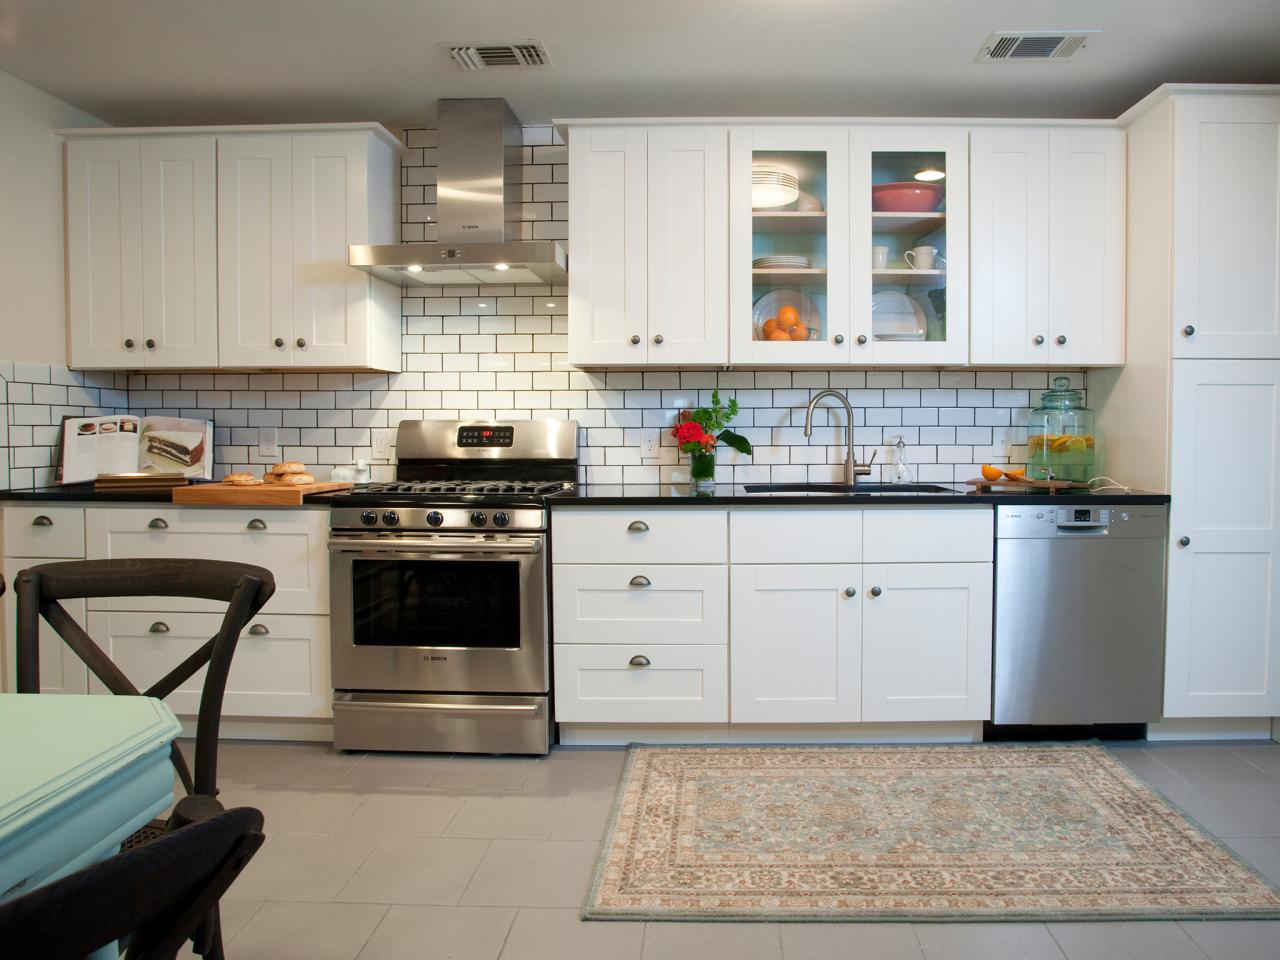 A wide range of interesting subway tile kitchen options for any amusing design of the blue tile backsplash ideas with white cabinets and white refrigerator ideas with dailygadgetfo Choice Image